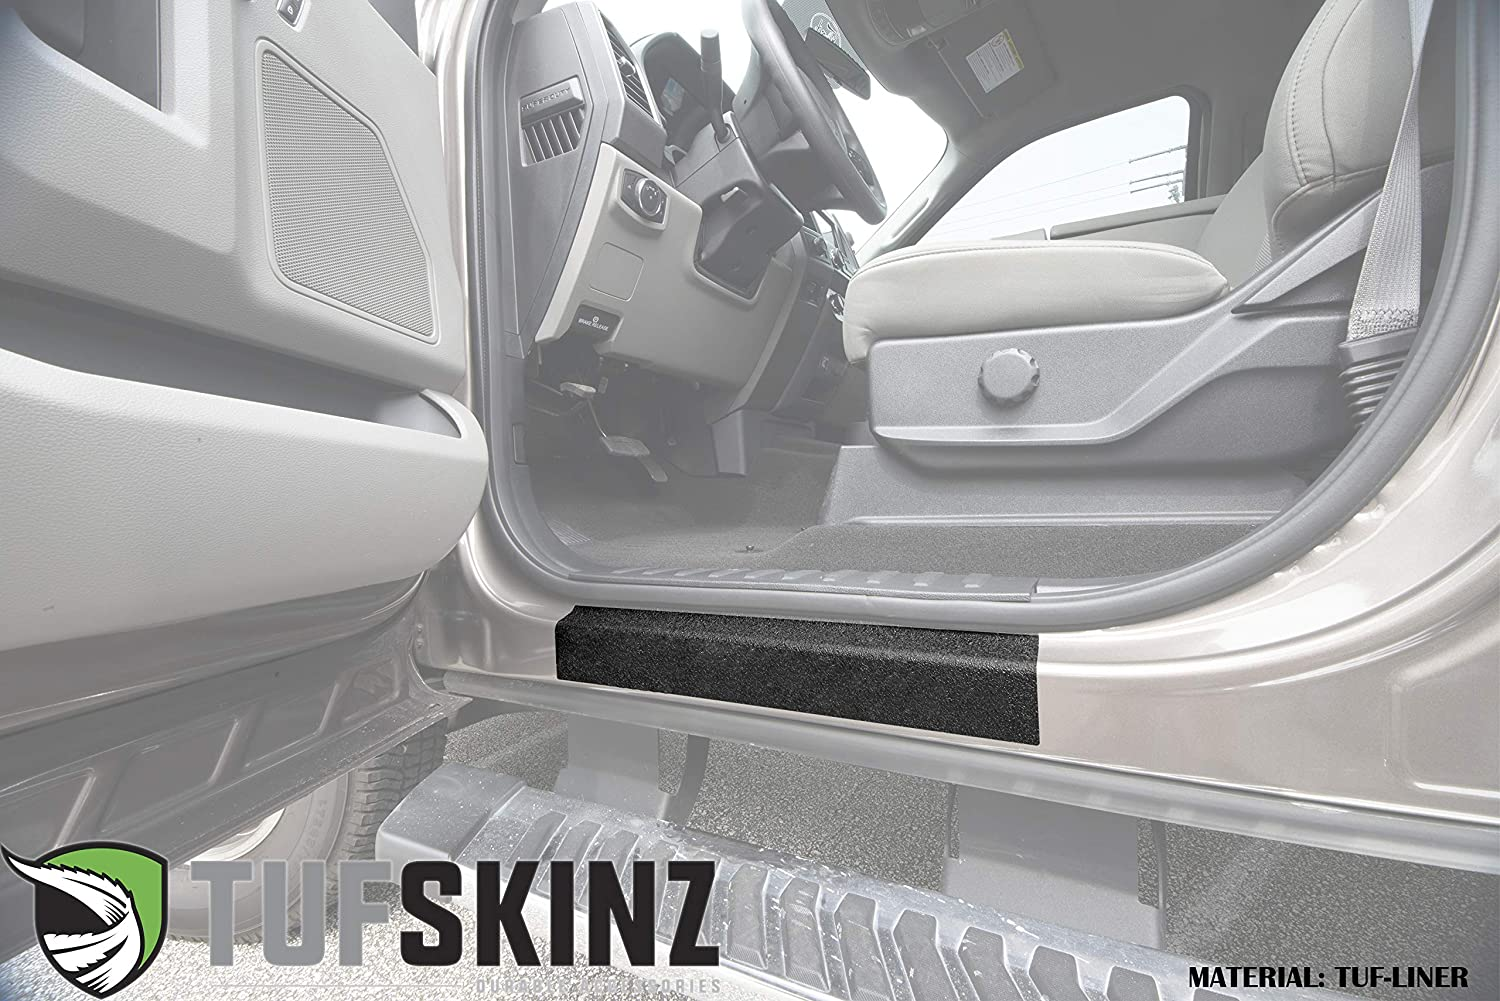 Front Door Sill Protection 2 Piece Kit TufSkinz Fits 2017-Up Ford Super Duty TUF-Liner, Black w//Gray Outline Logo